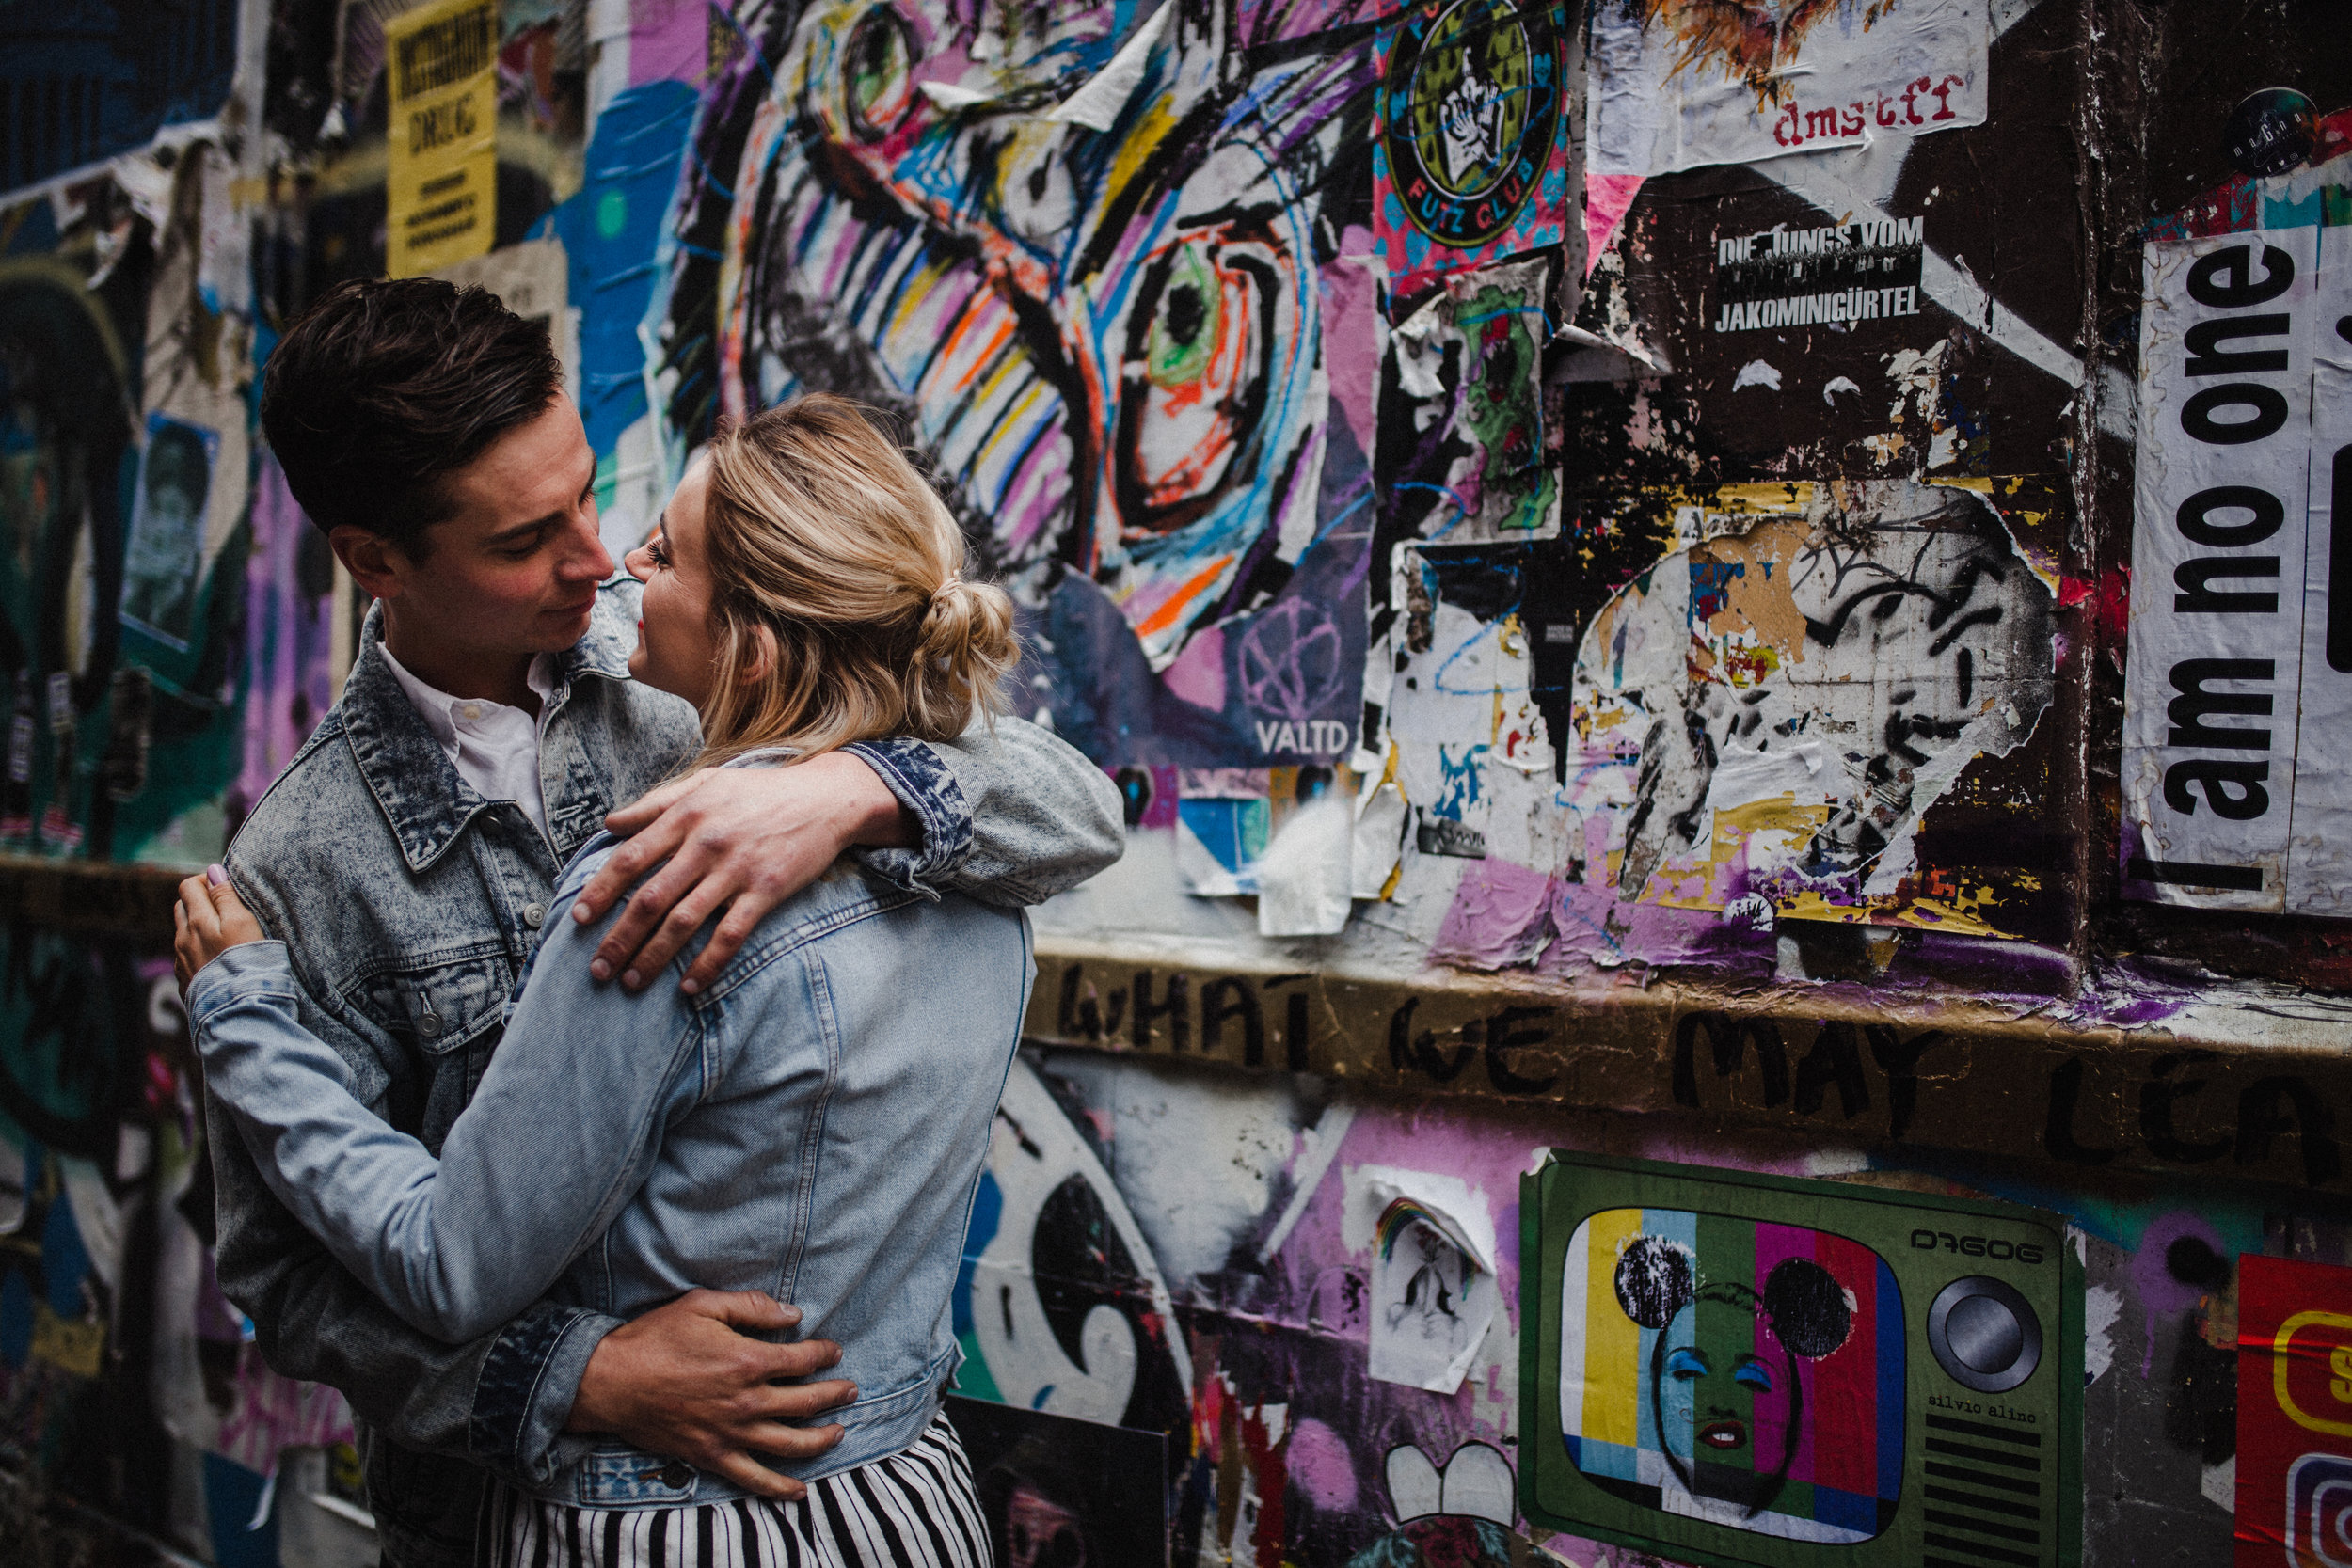 Couple embrace during their couple shoot in Brick Lane, featuring a colourful graffiti wall as a backdrop.